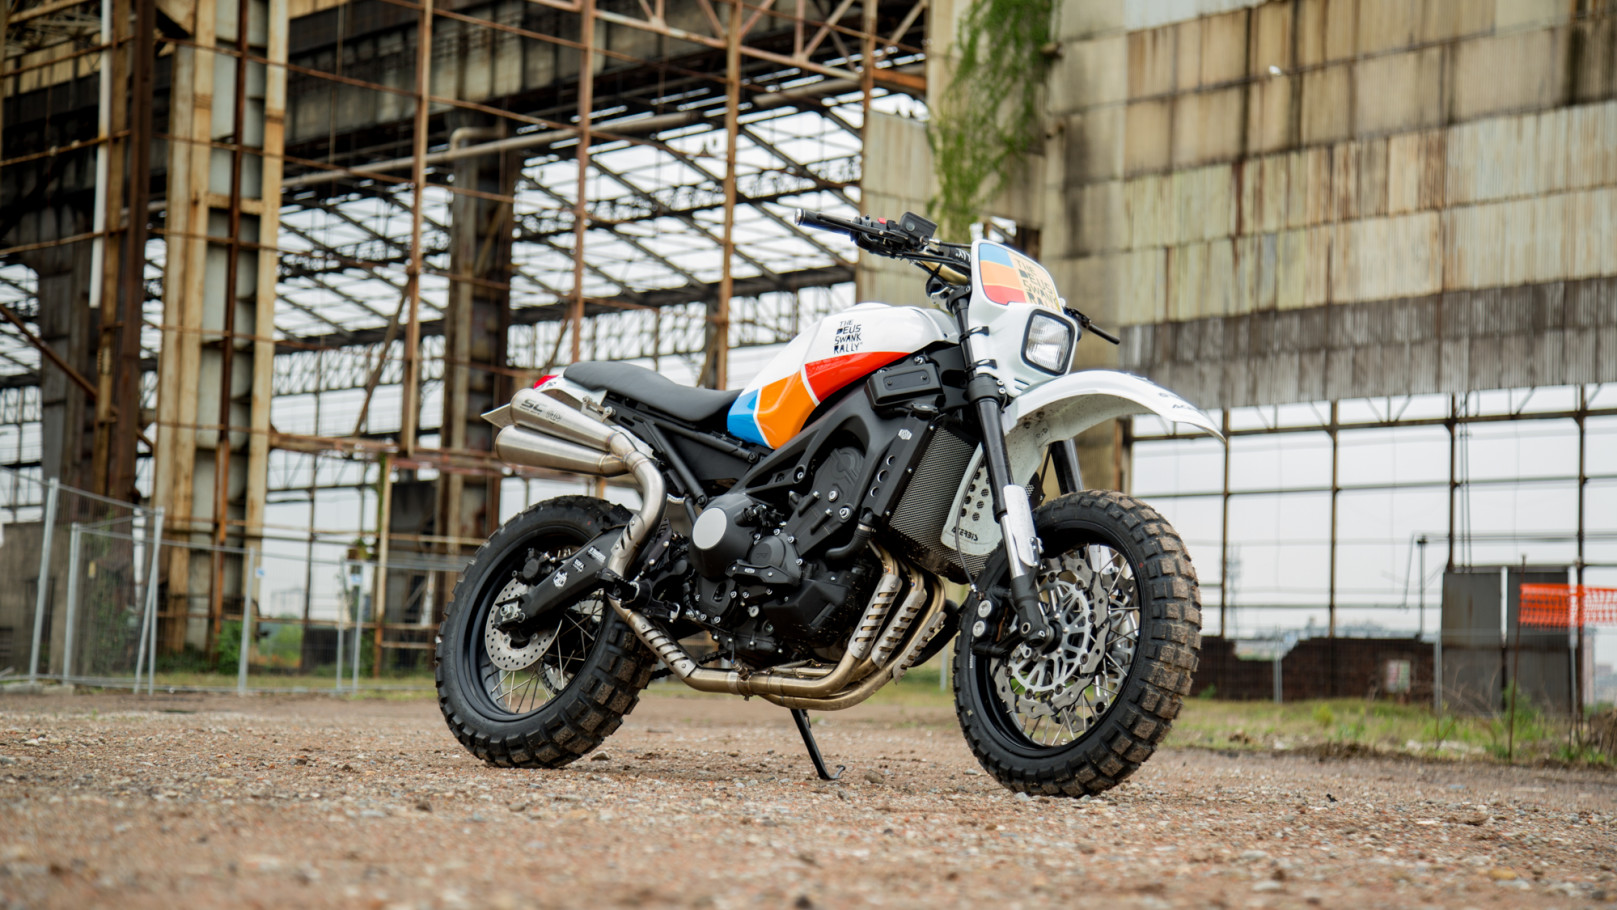 Bearoll YAMAHA XSR 900 DEUS SWANK RALLY Customized